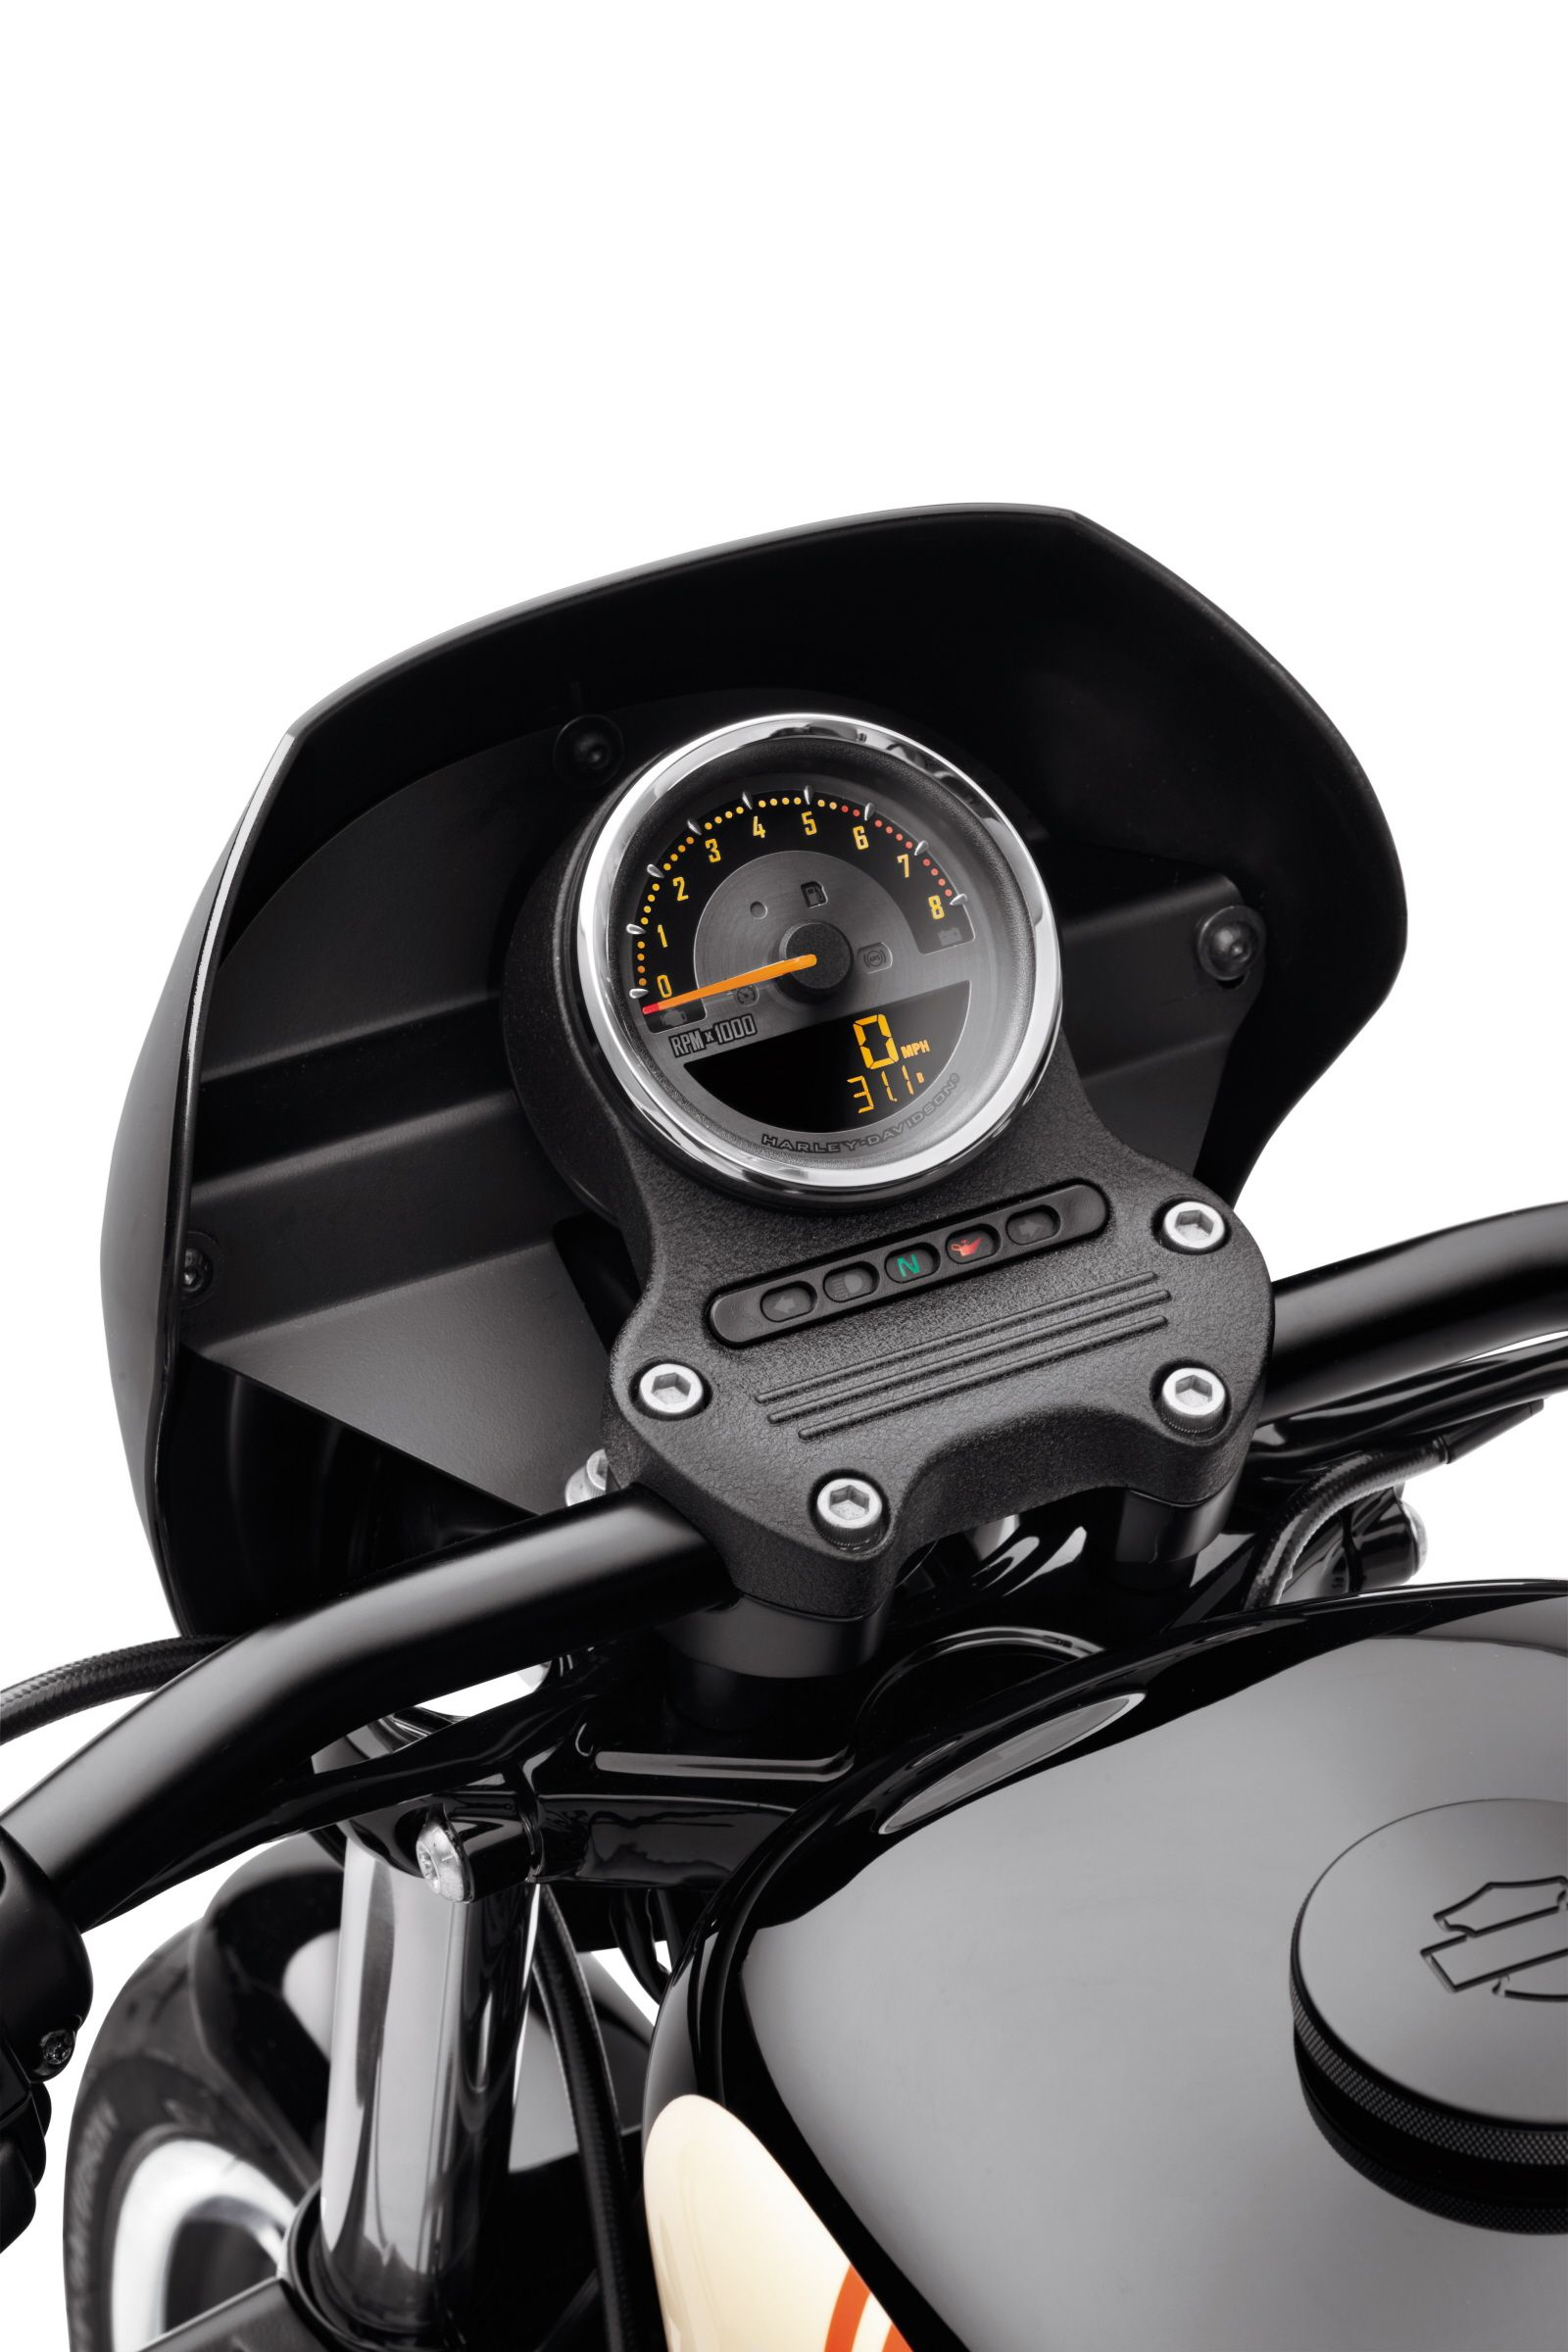 Allows you to monitor engine speed fuel level and gear for Motor cycle without gear